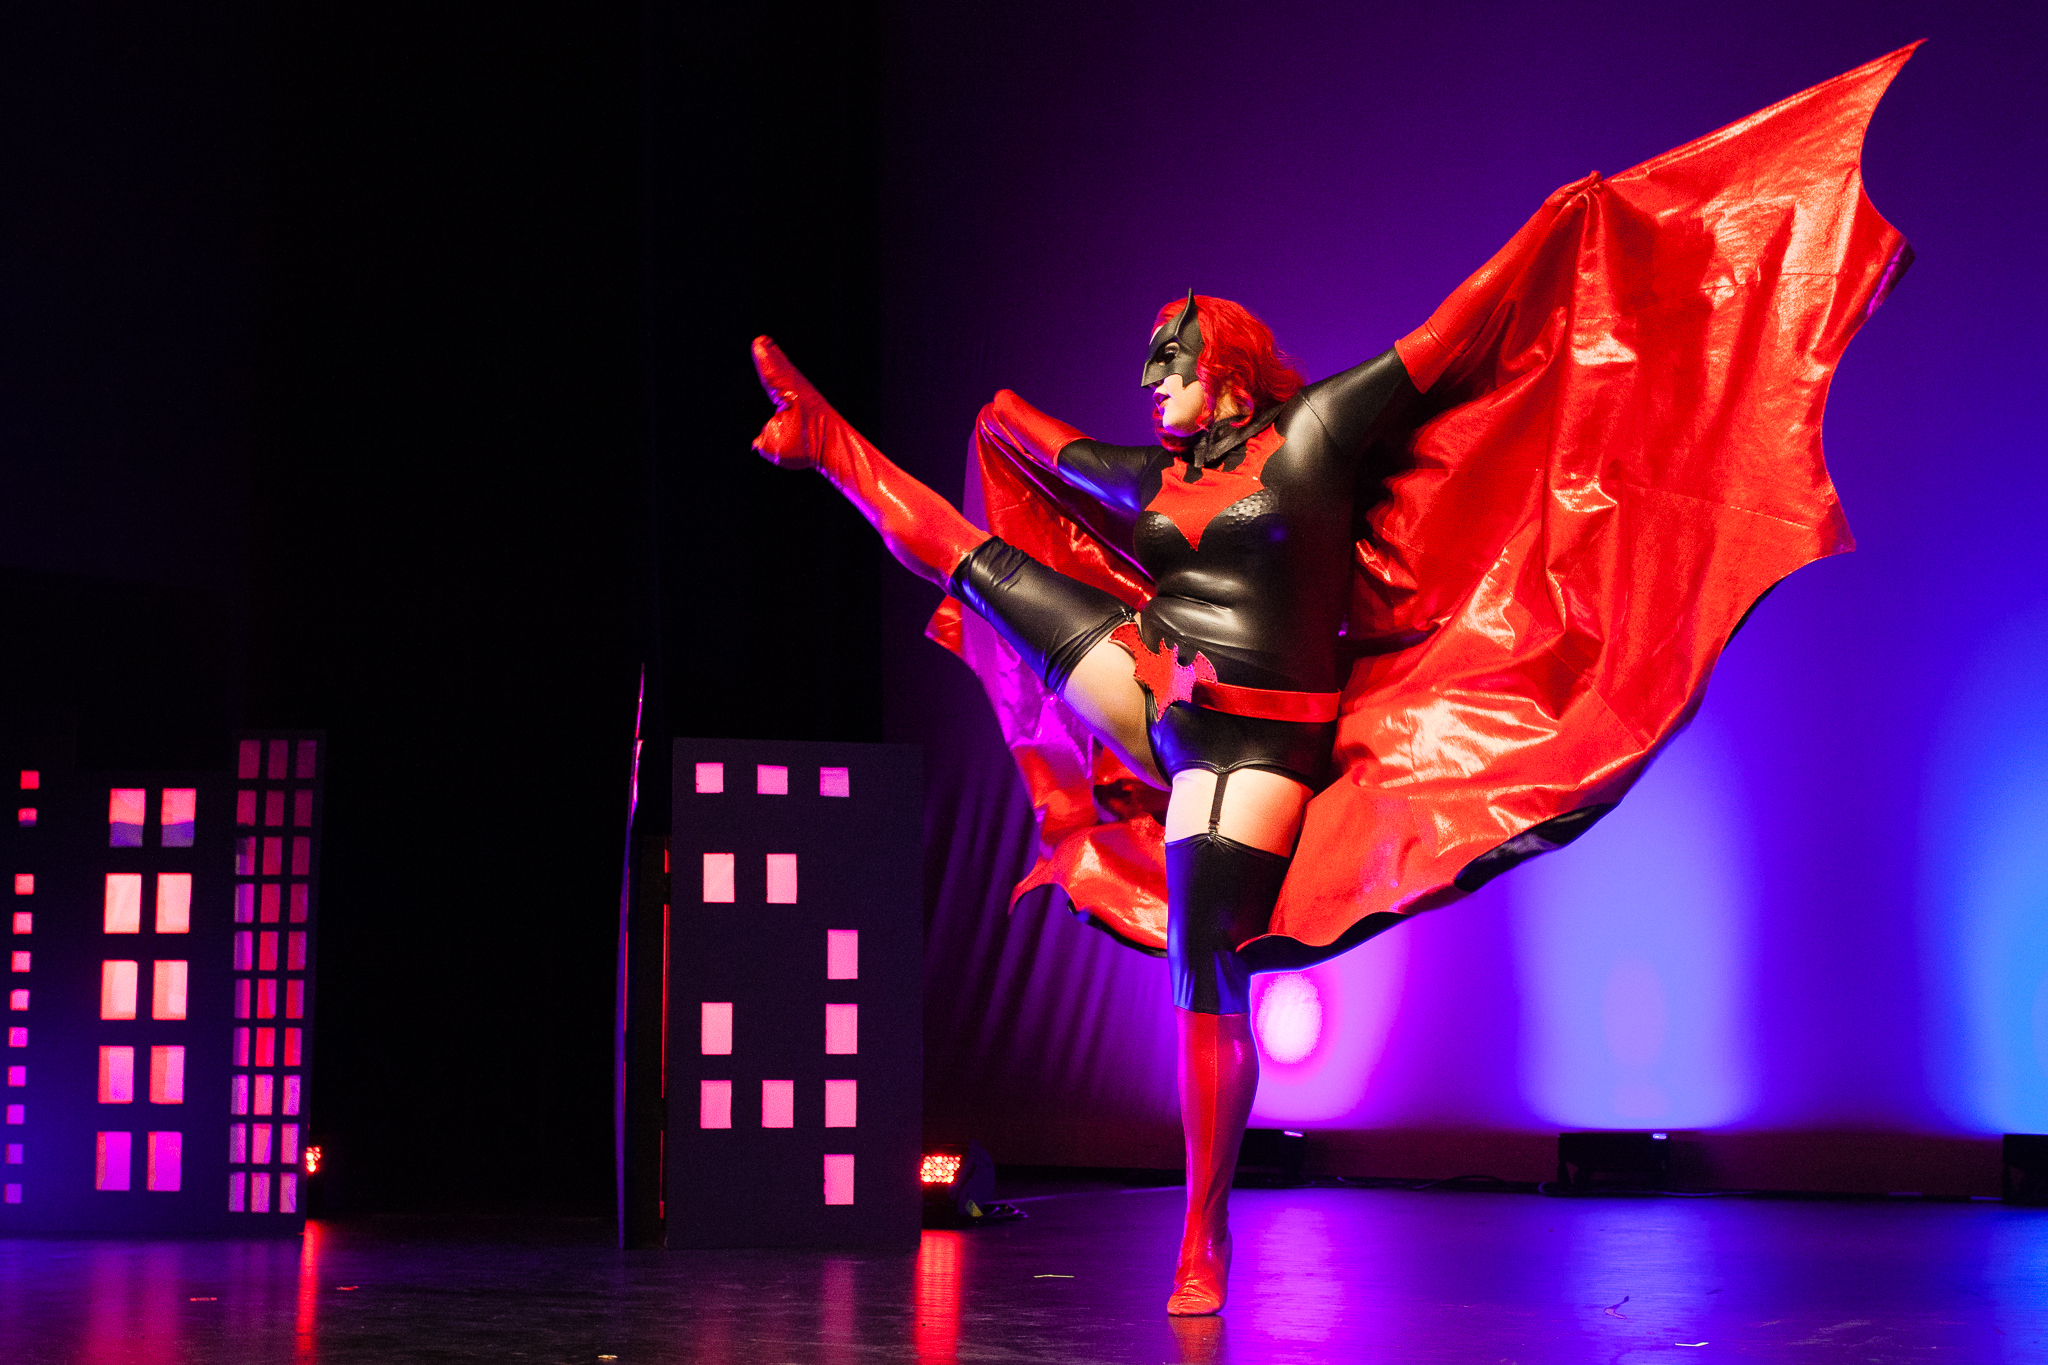 2) Dolly Monroe As Batwoman (Photo By Craig Symonds)